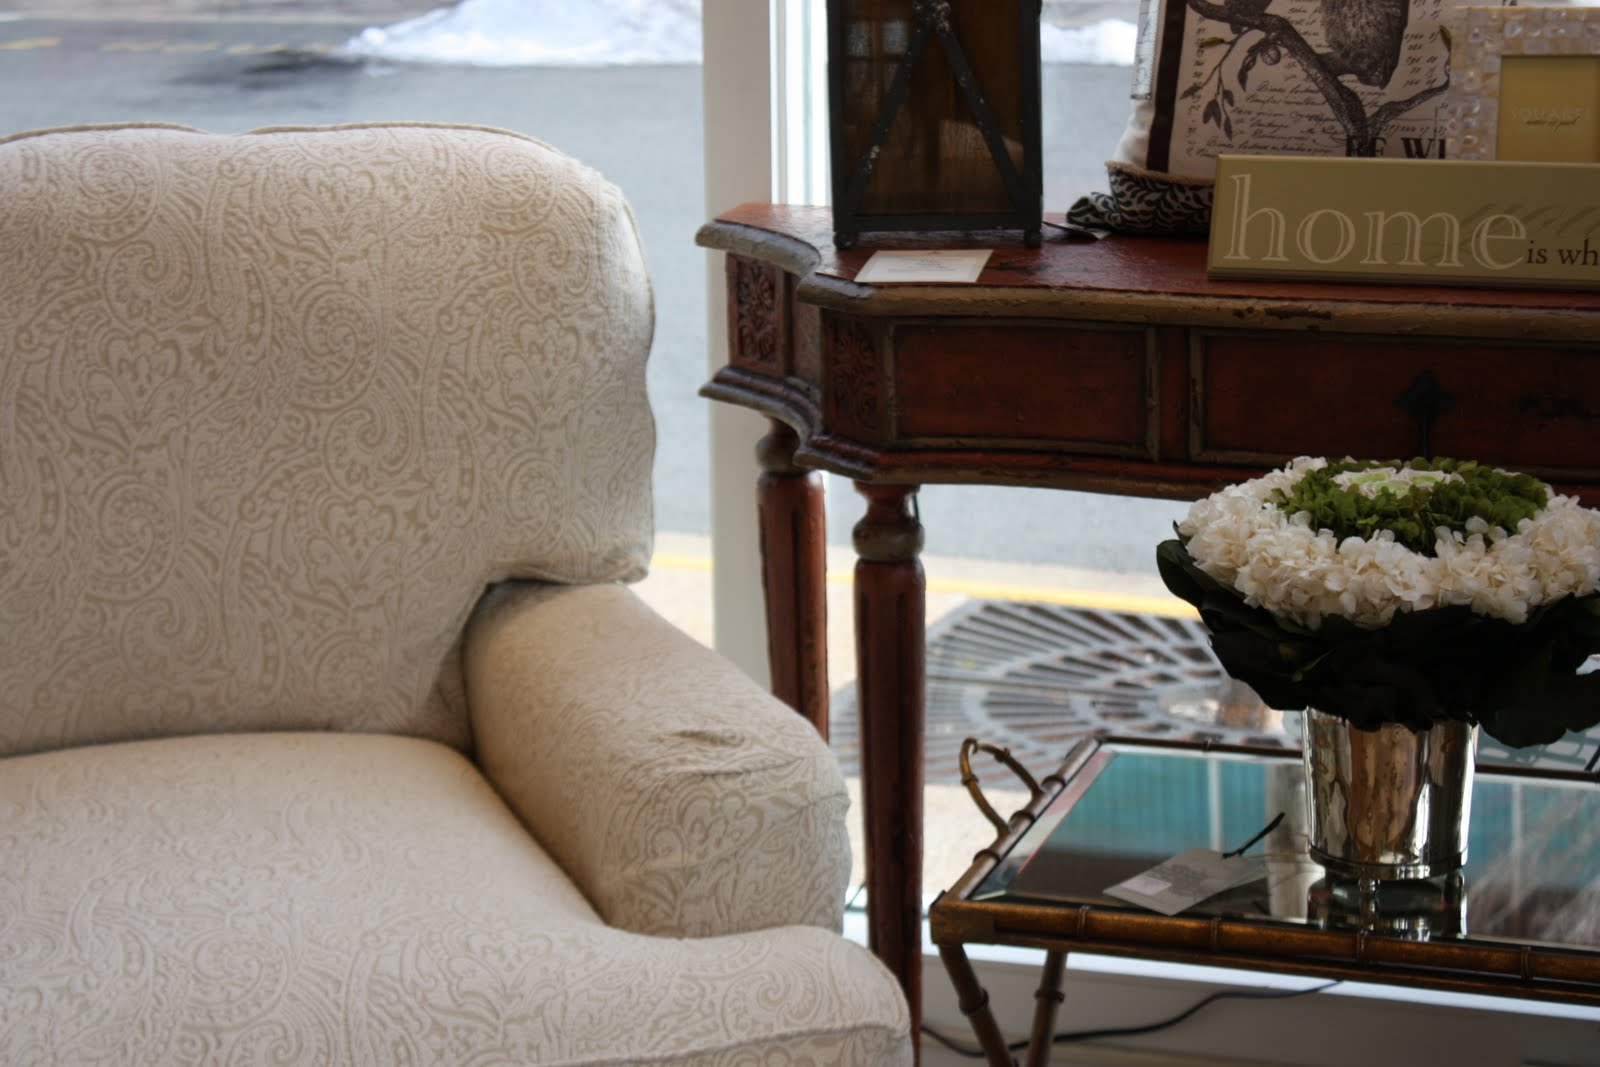 Talk About A Comfortable Chair To Curl Up In! Our New Dover Armchair From  The Rachel Ashwell Shabby Chic Collection By Miles Talbott Furniture  Arrived ...